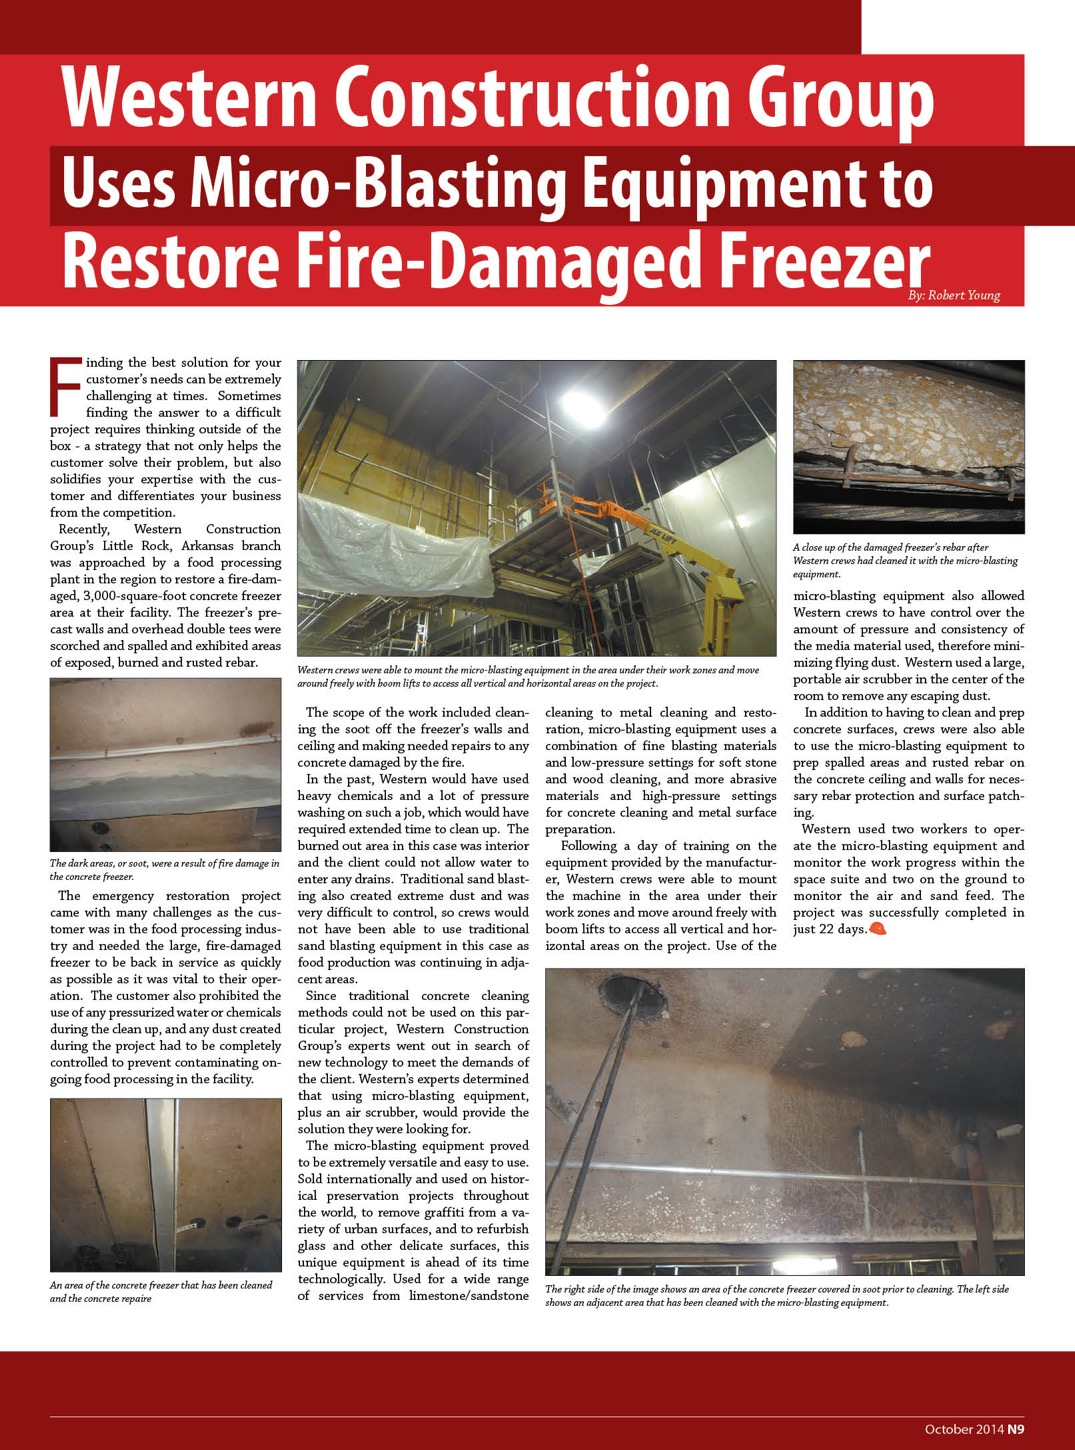 Western Construction Group Uses Micro-Blasting Equipment to  Restore Fire-Damaged Freezer